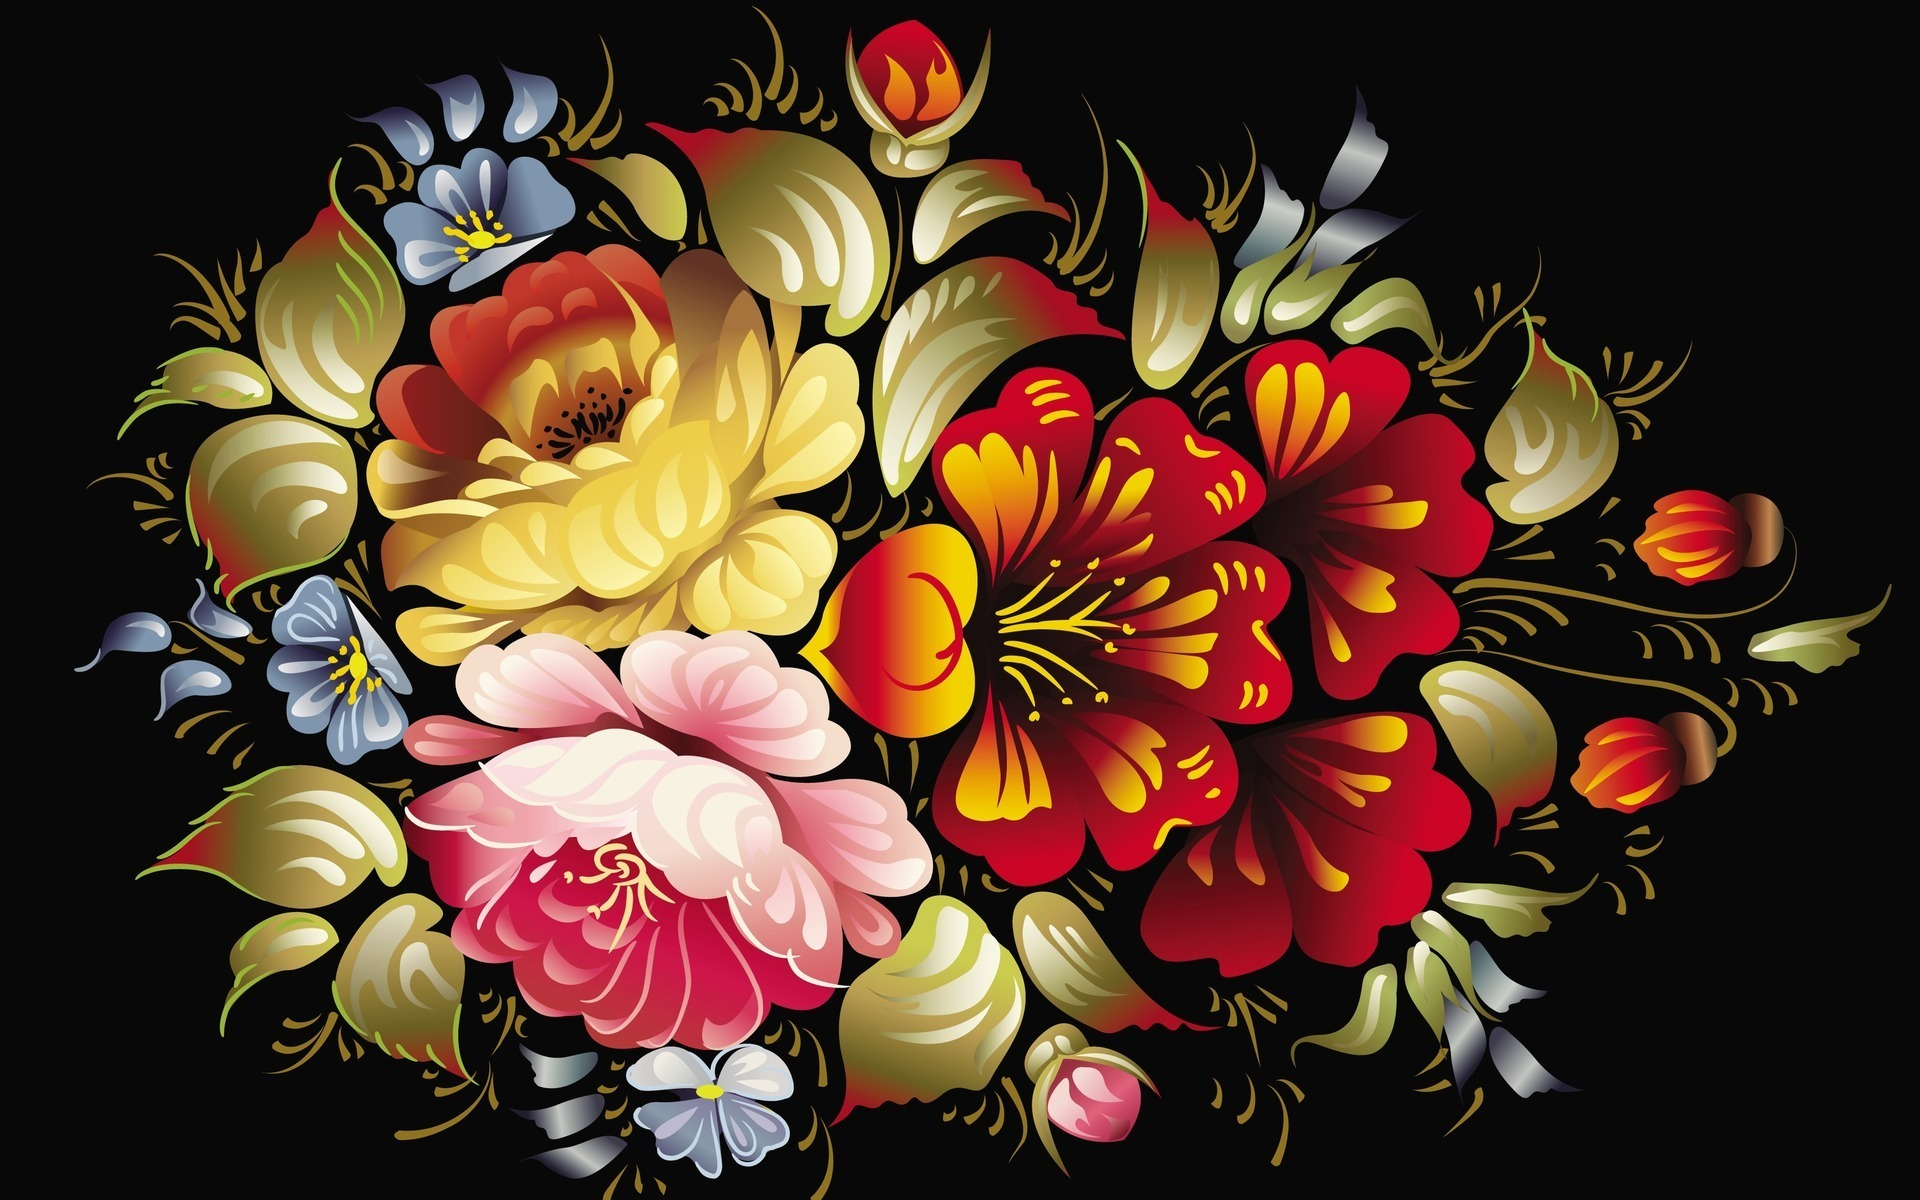 Black Background Wallpaper With Flowers Wide Wallpaper - Cool Wallpaper Designs For Desktop , HD Wallpaper & Backgrounds